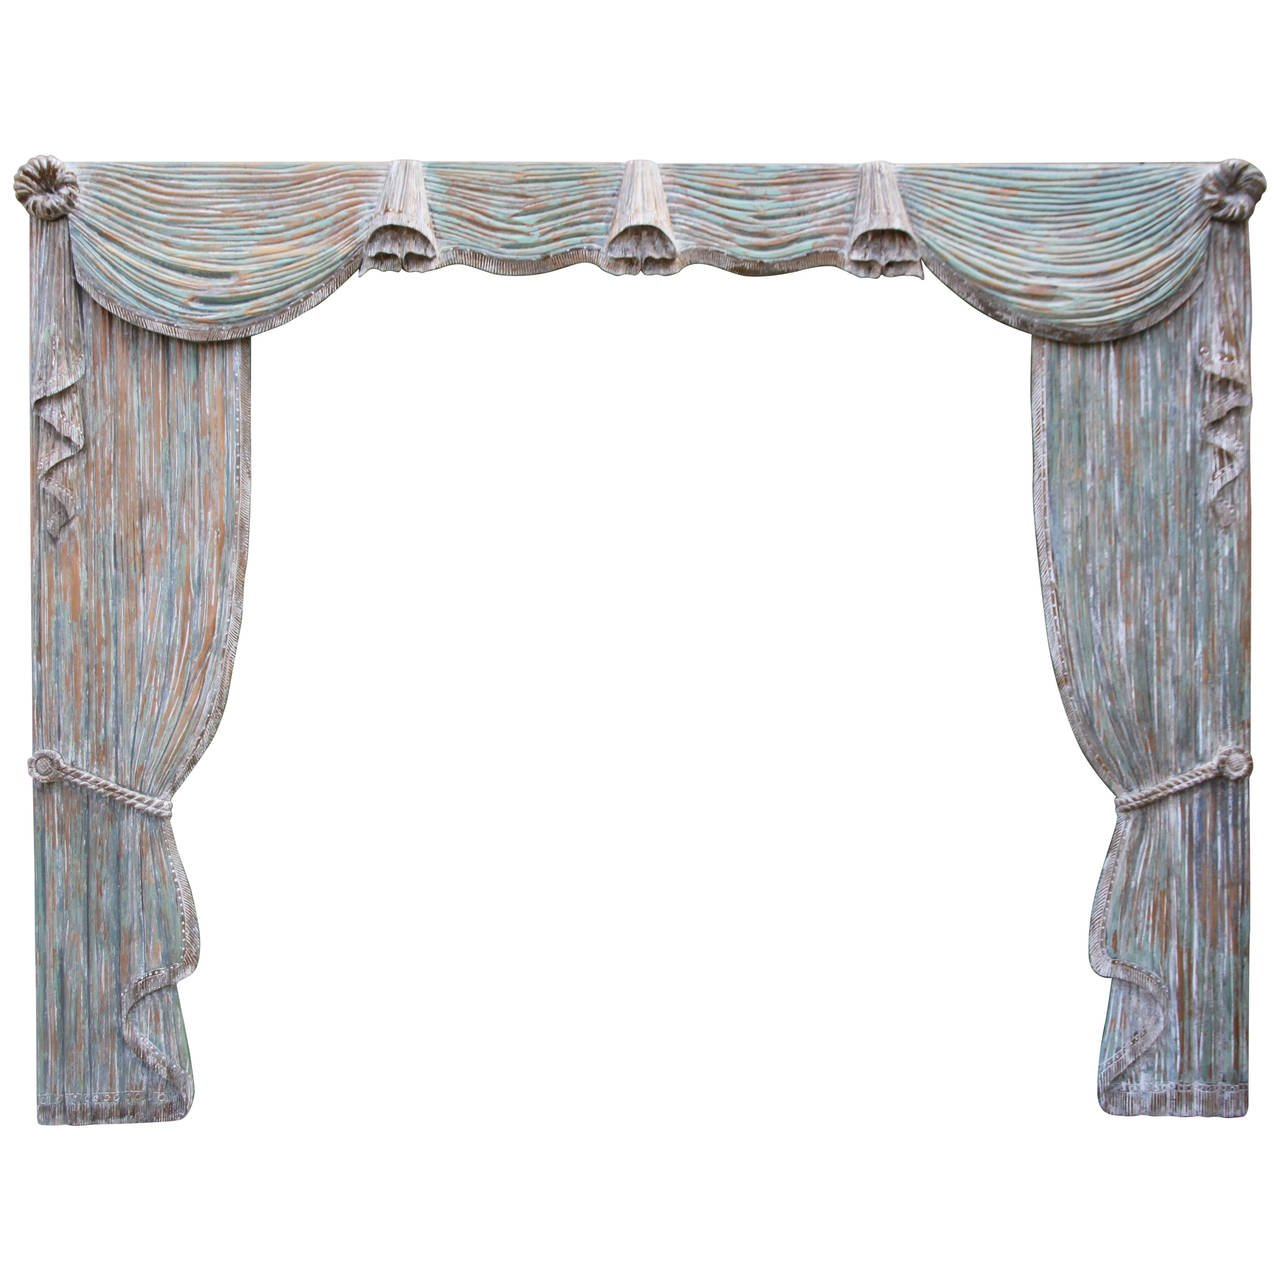 French Hand-Carved Painted Wood Drapery Panels with Valence